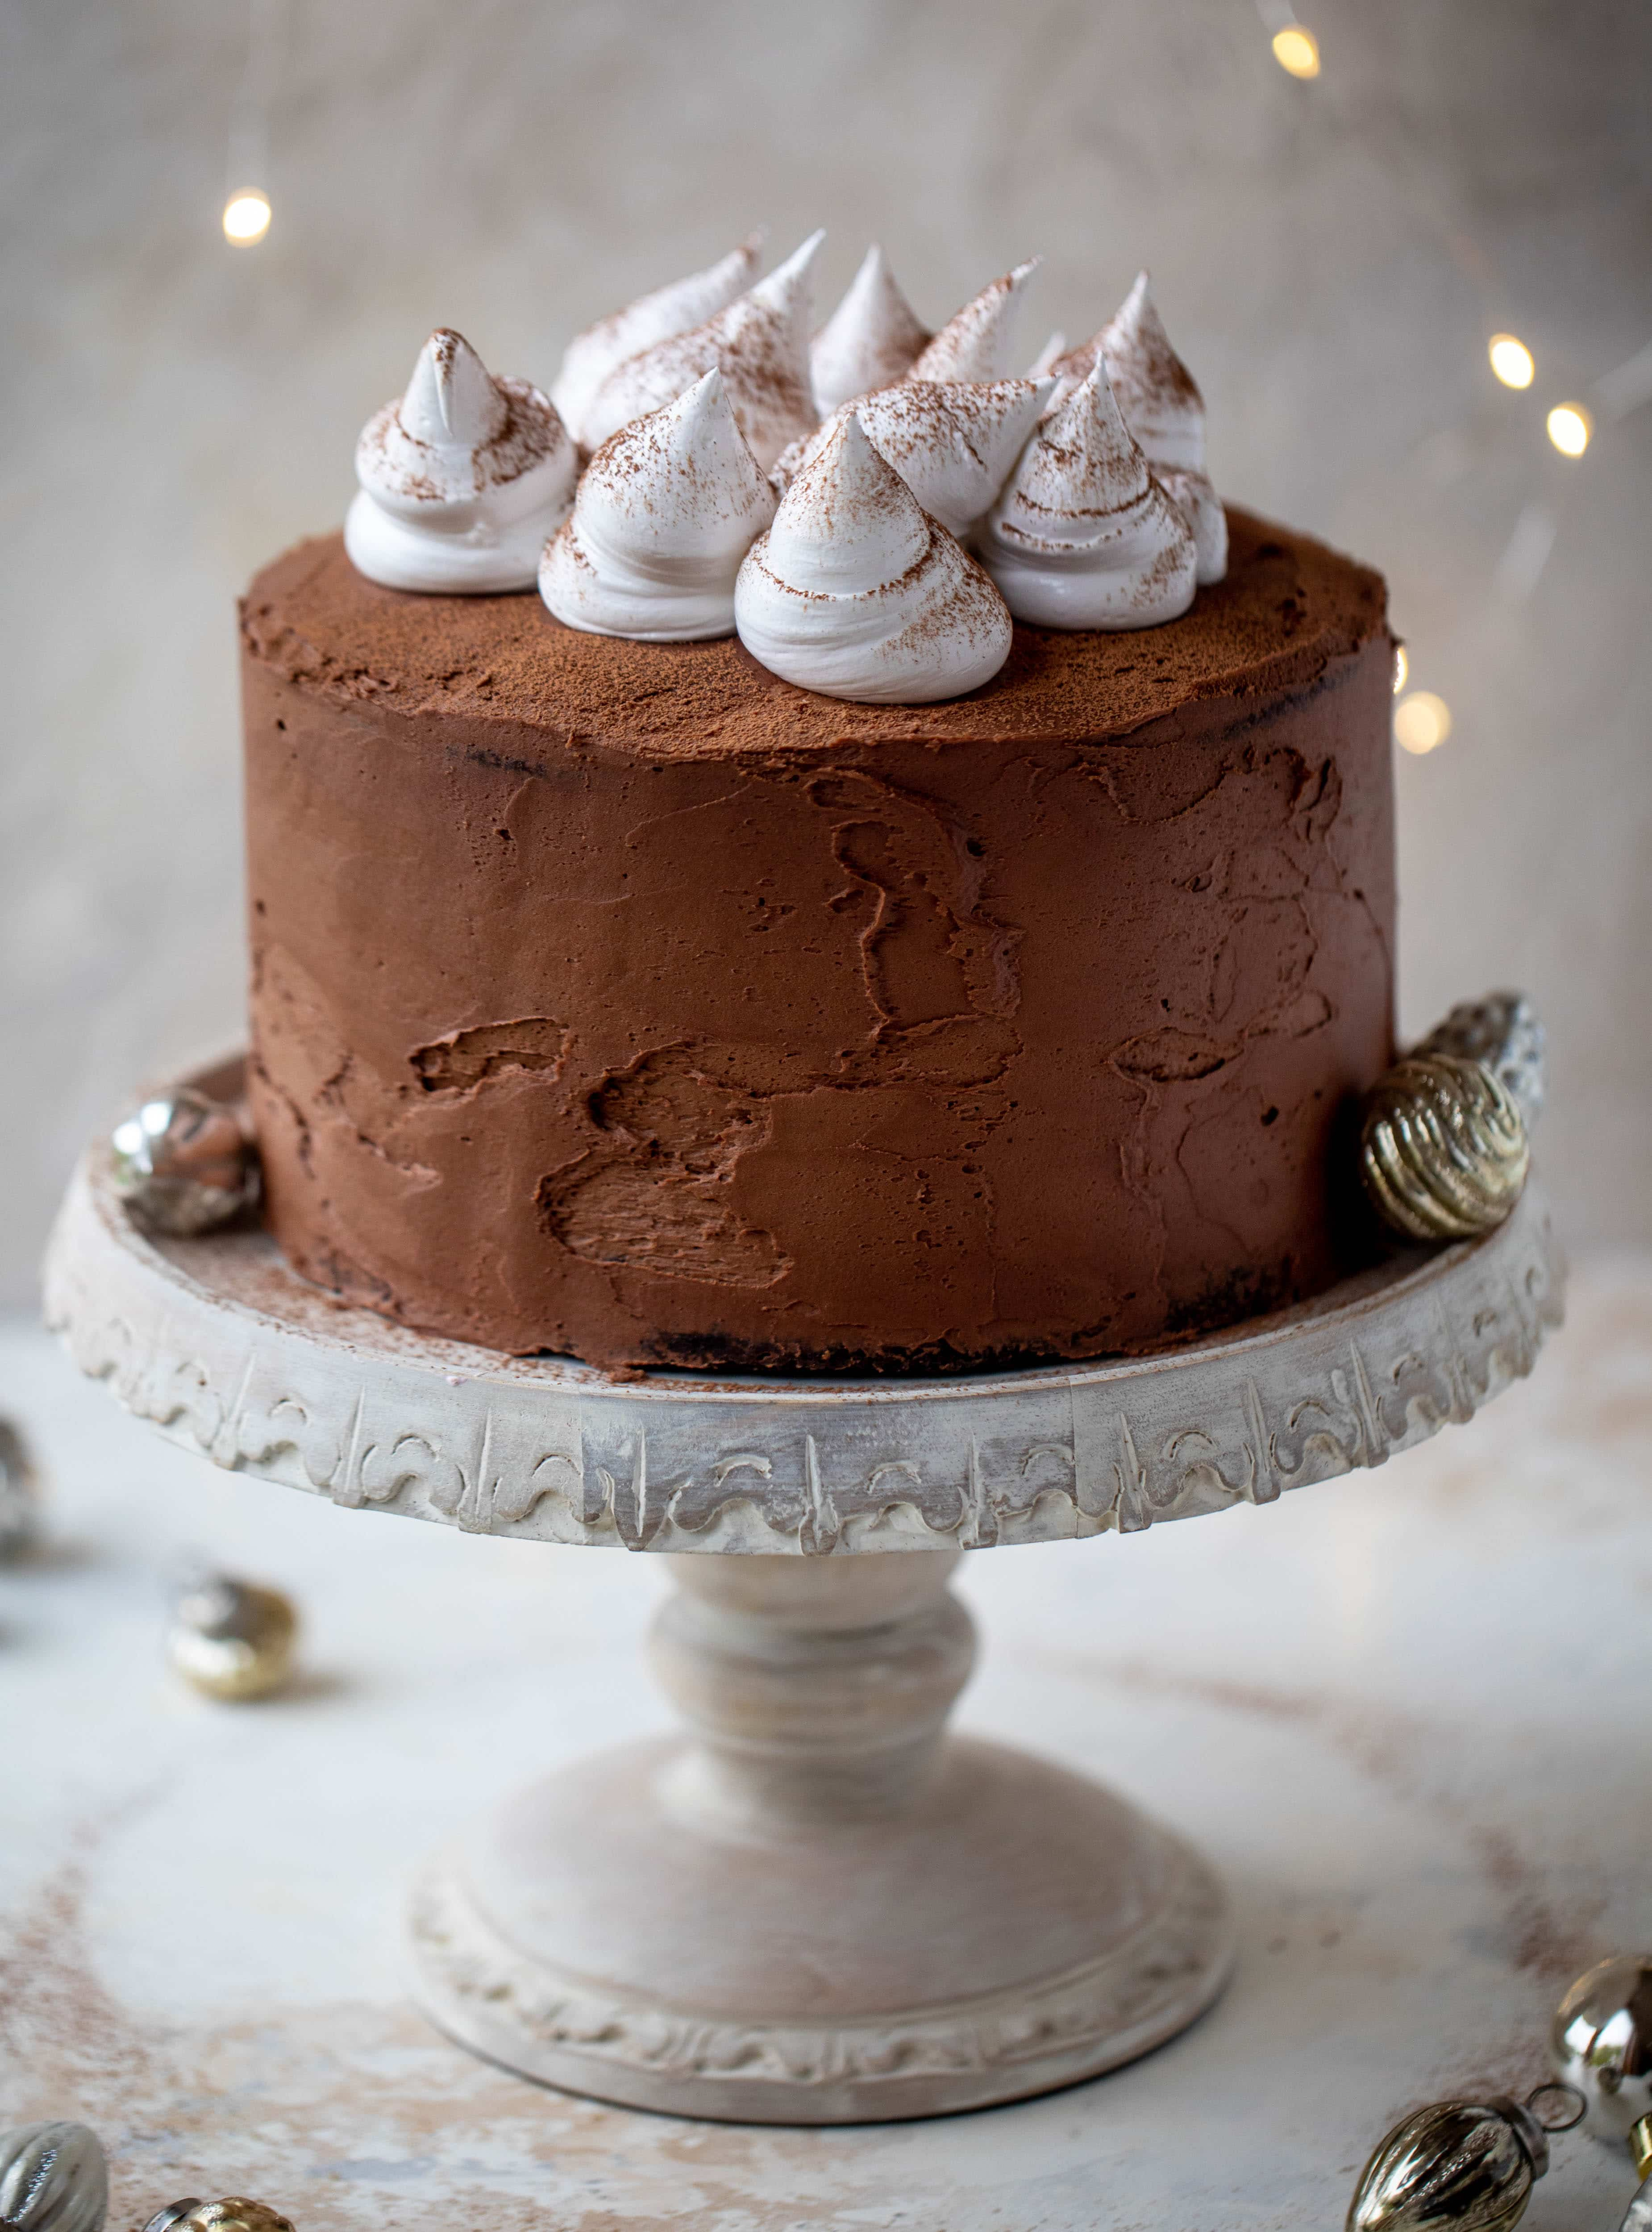 This hot cocoa cake is made with the fudgiest chocolate cake, smothered in chocolate cream cheese frosting and dolloped with whipped marshmallow!